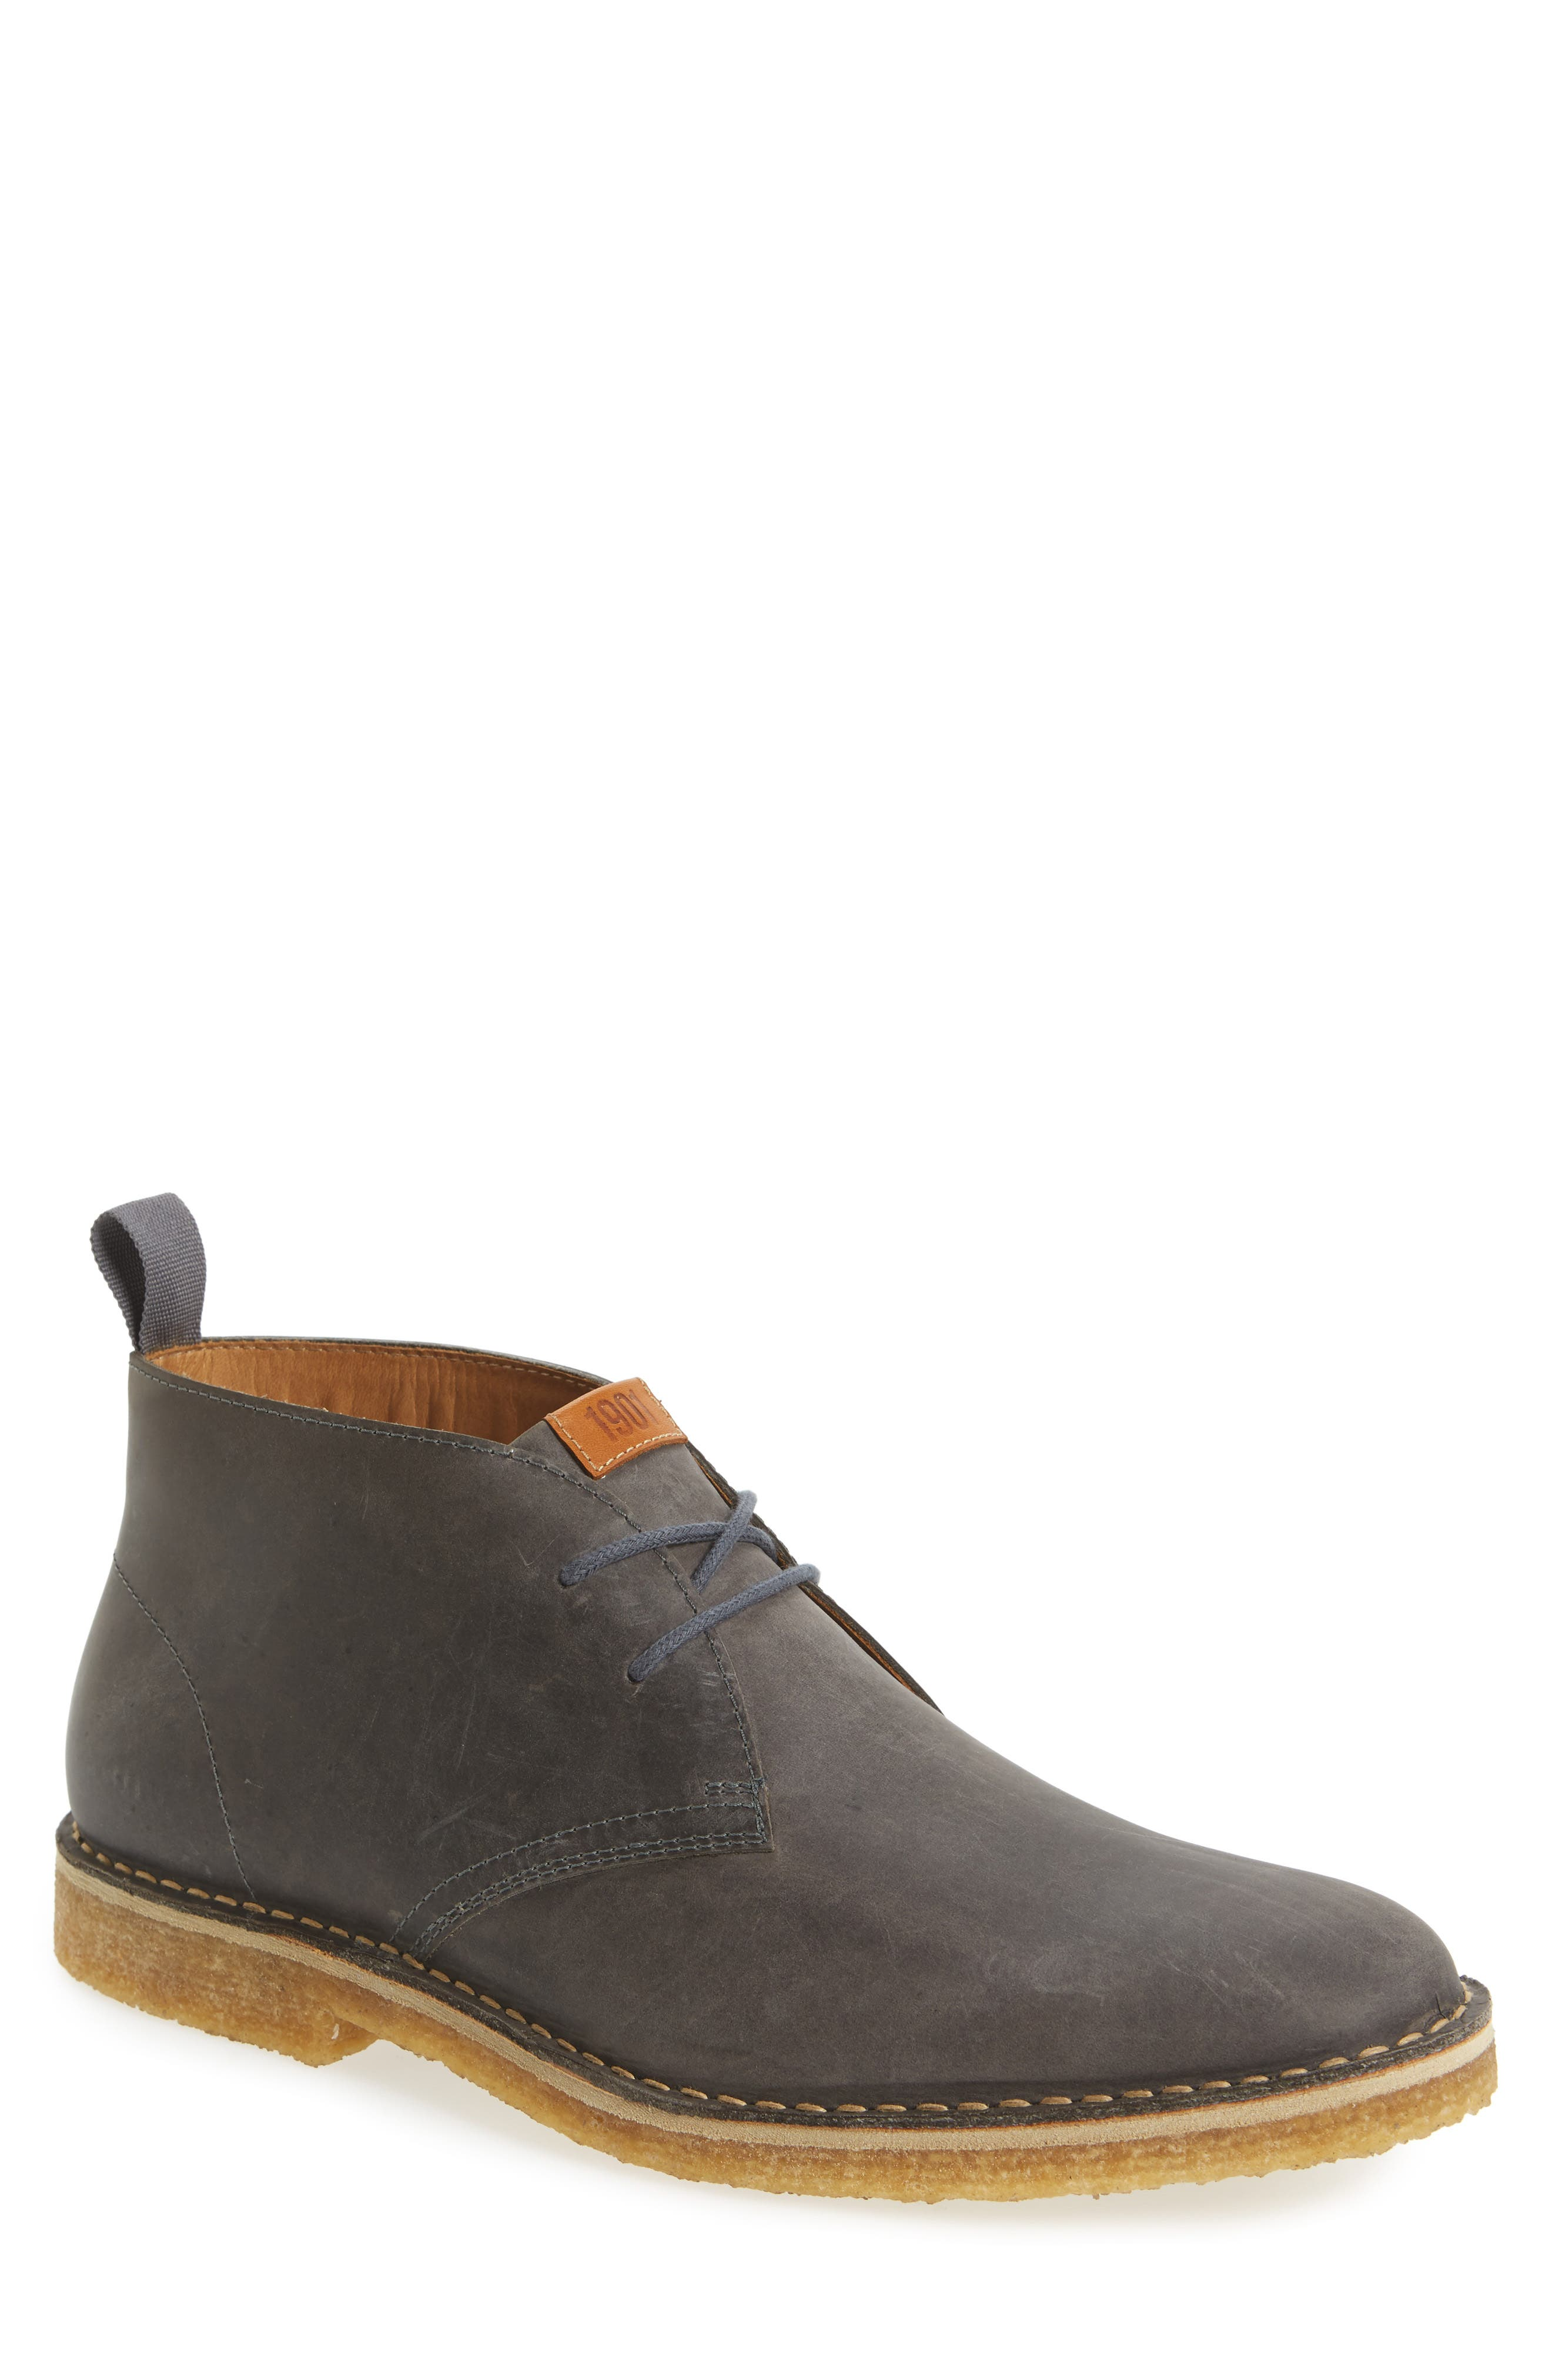 Westport Chukka Boot,                             Main thumbnail 1, color,                             020